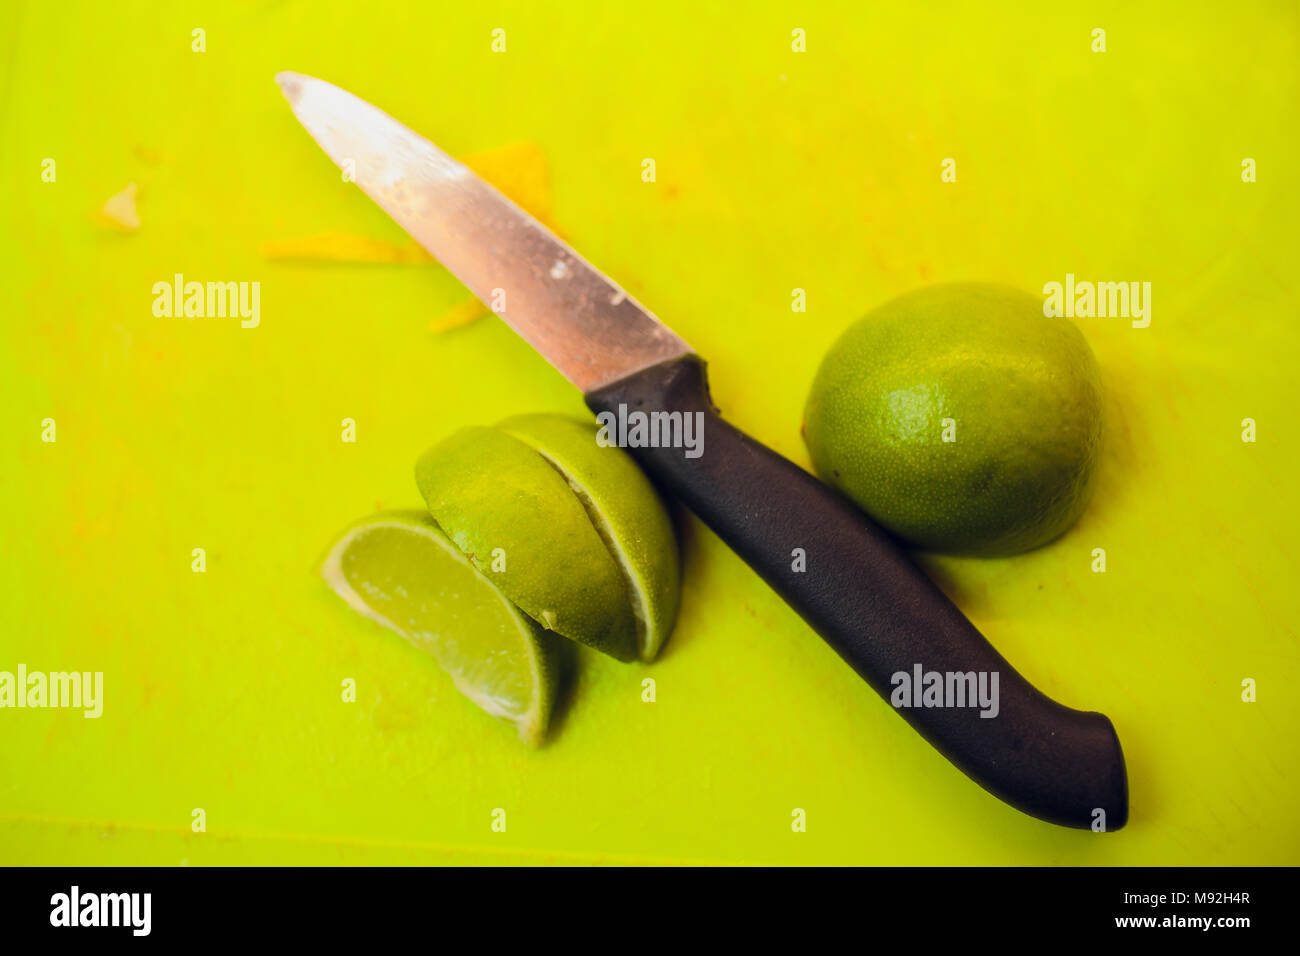 lemon lime slices with mint leaves and knife on stone board - Stock Image